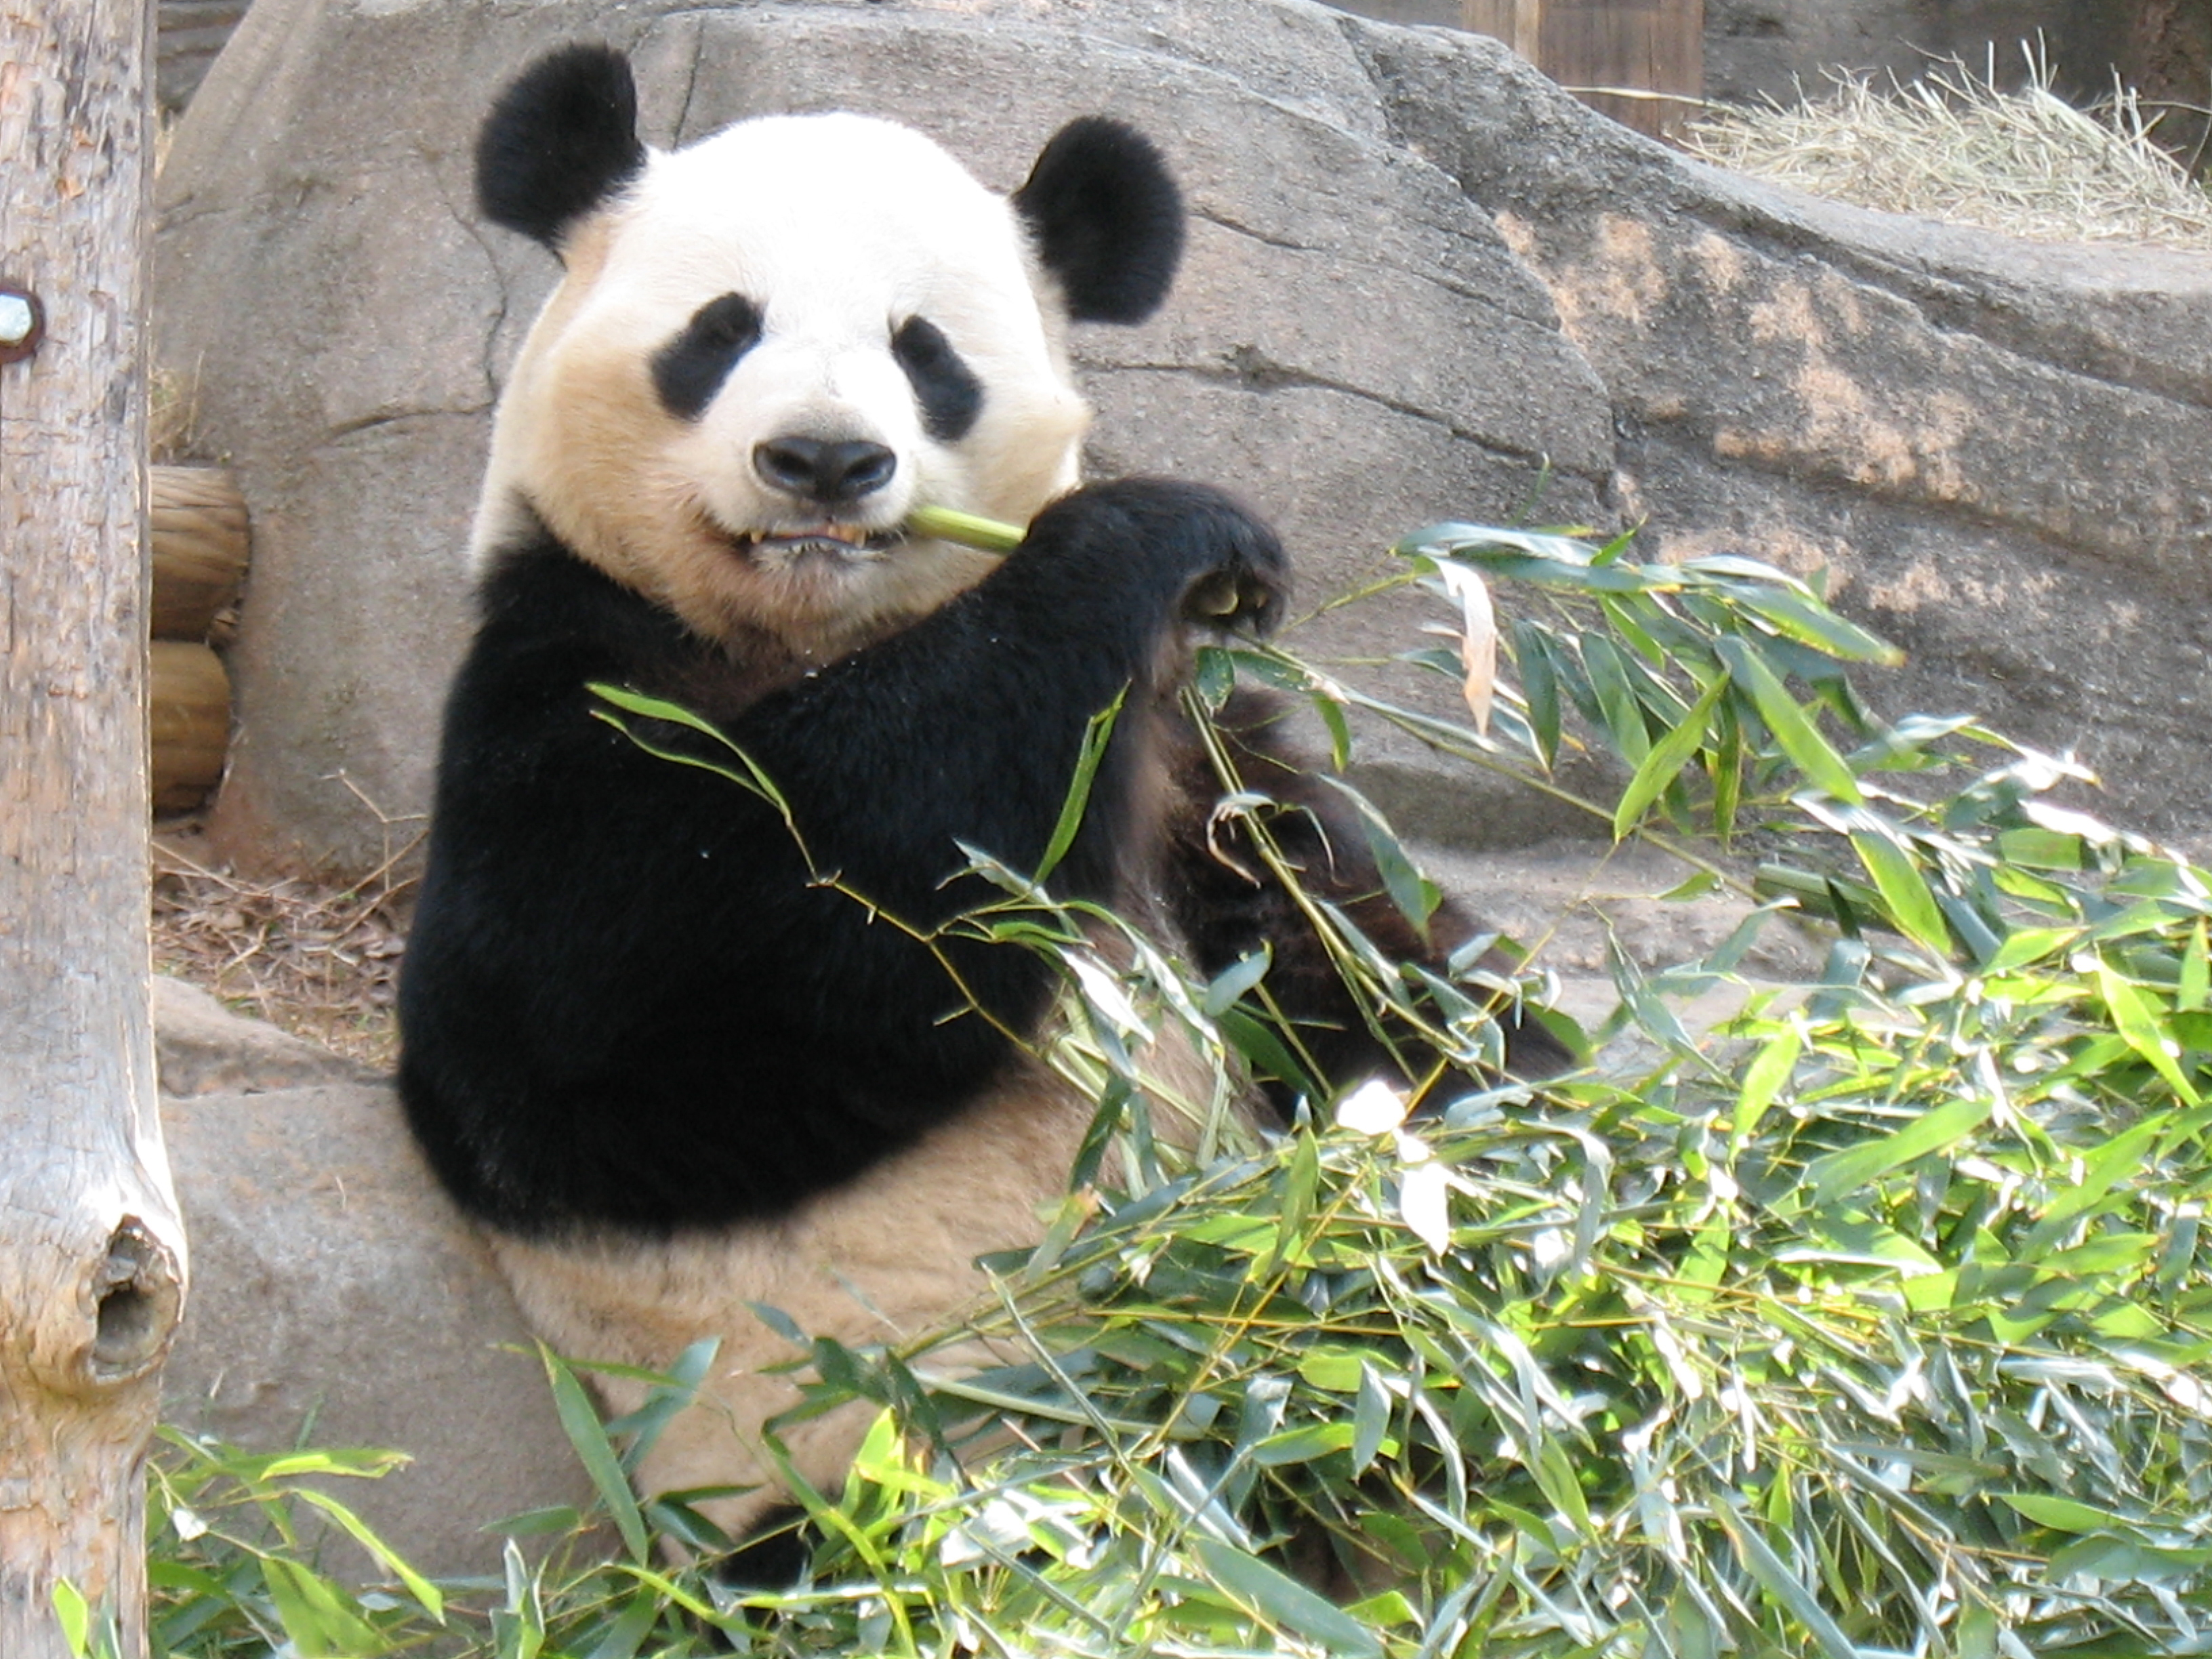 Panda Eating Bamboo - SEO Customer Paradigm